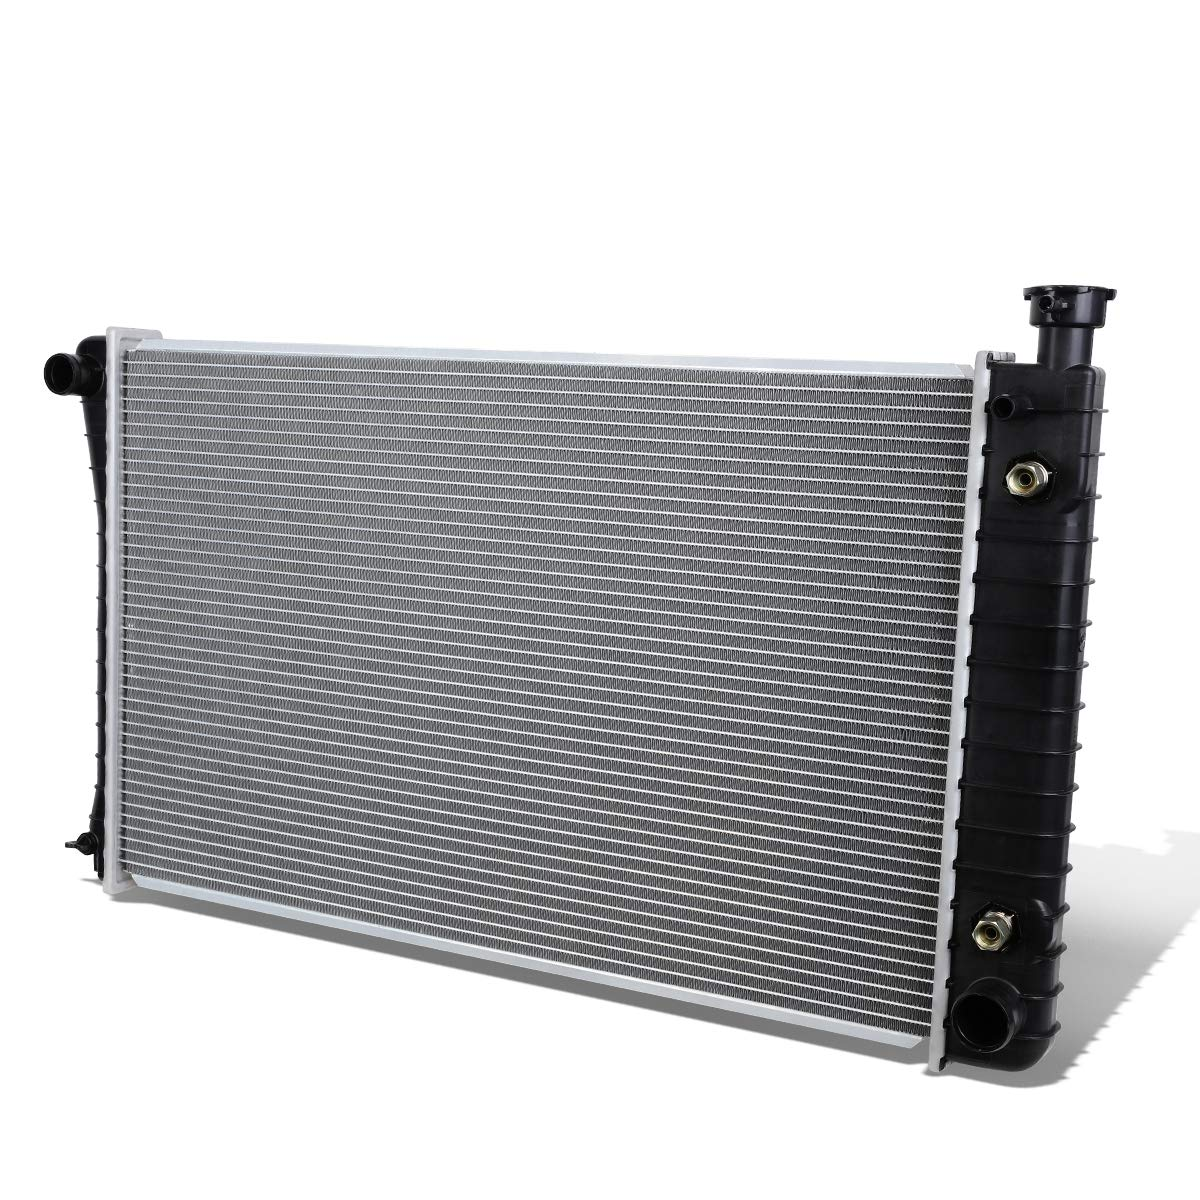 For 88-95 Chevy GMC C/K Pickup/Suburban AT Lightweight OE Style Full Aluminum Core Radiator DPI 618 Auto Dynasty